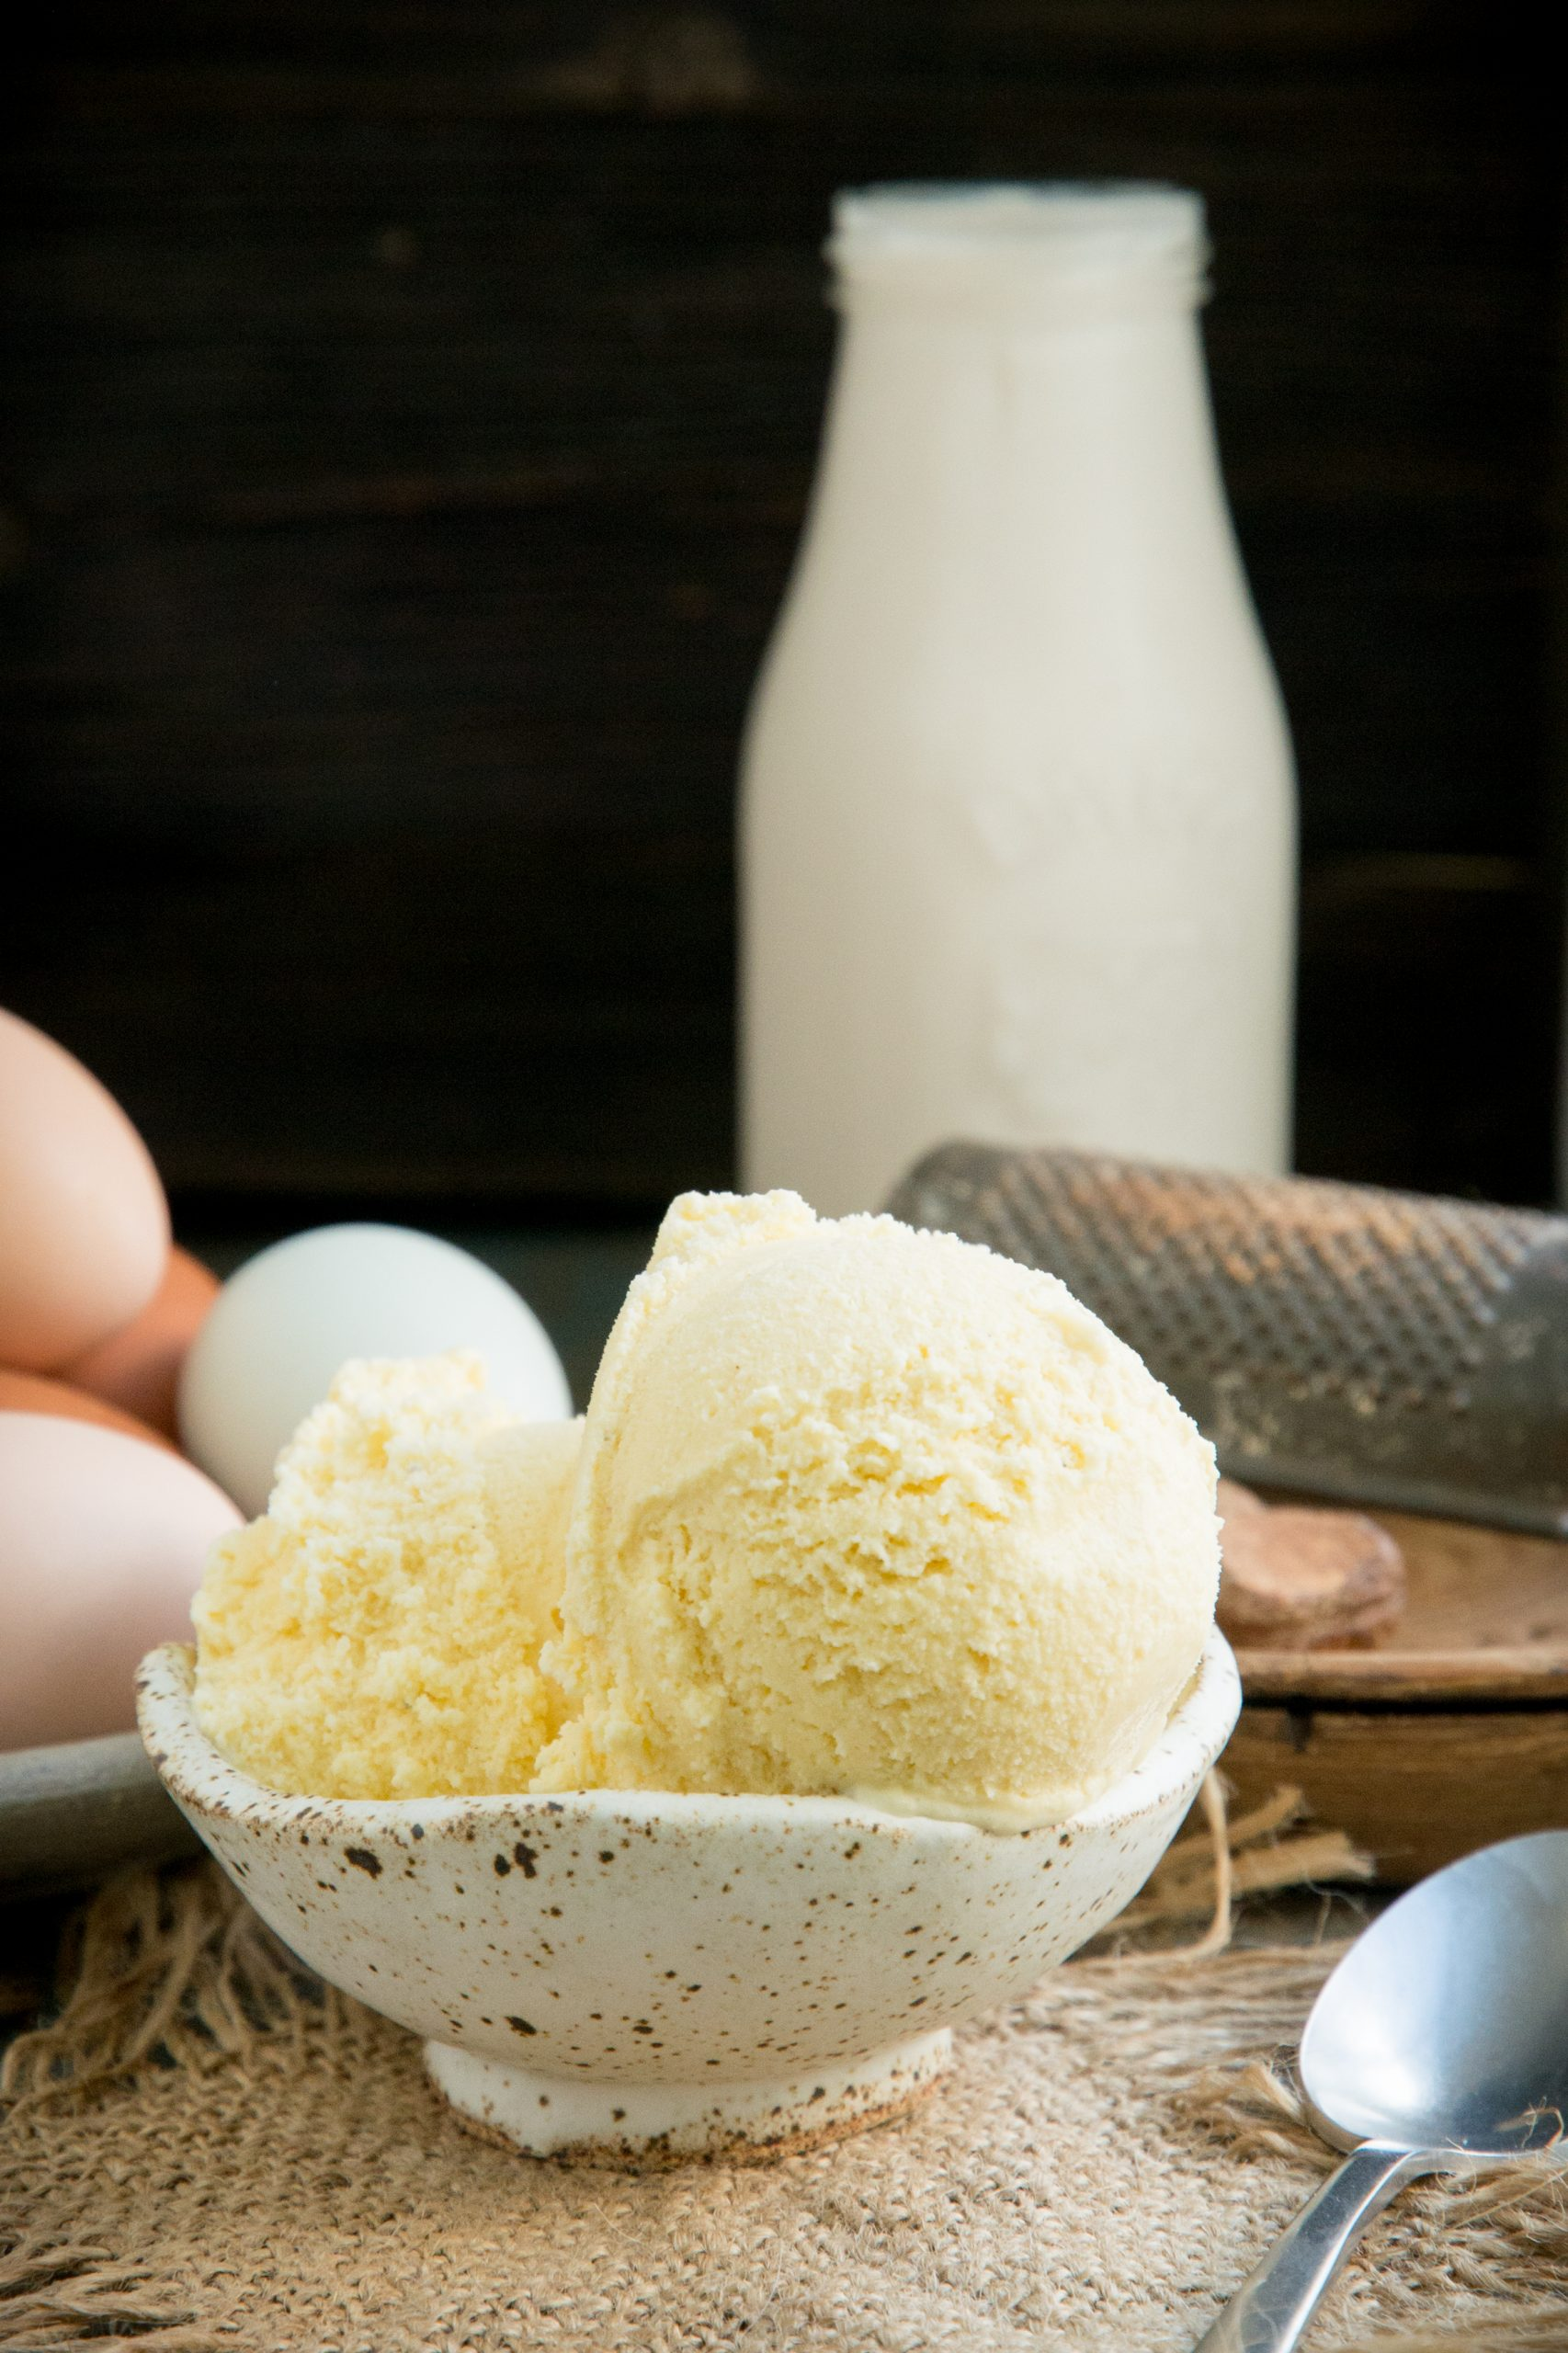 Ice cream with cream and eggs in the background.